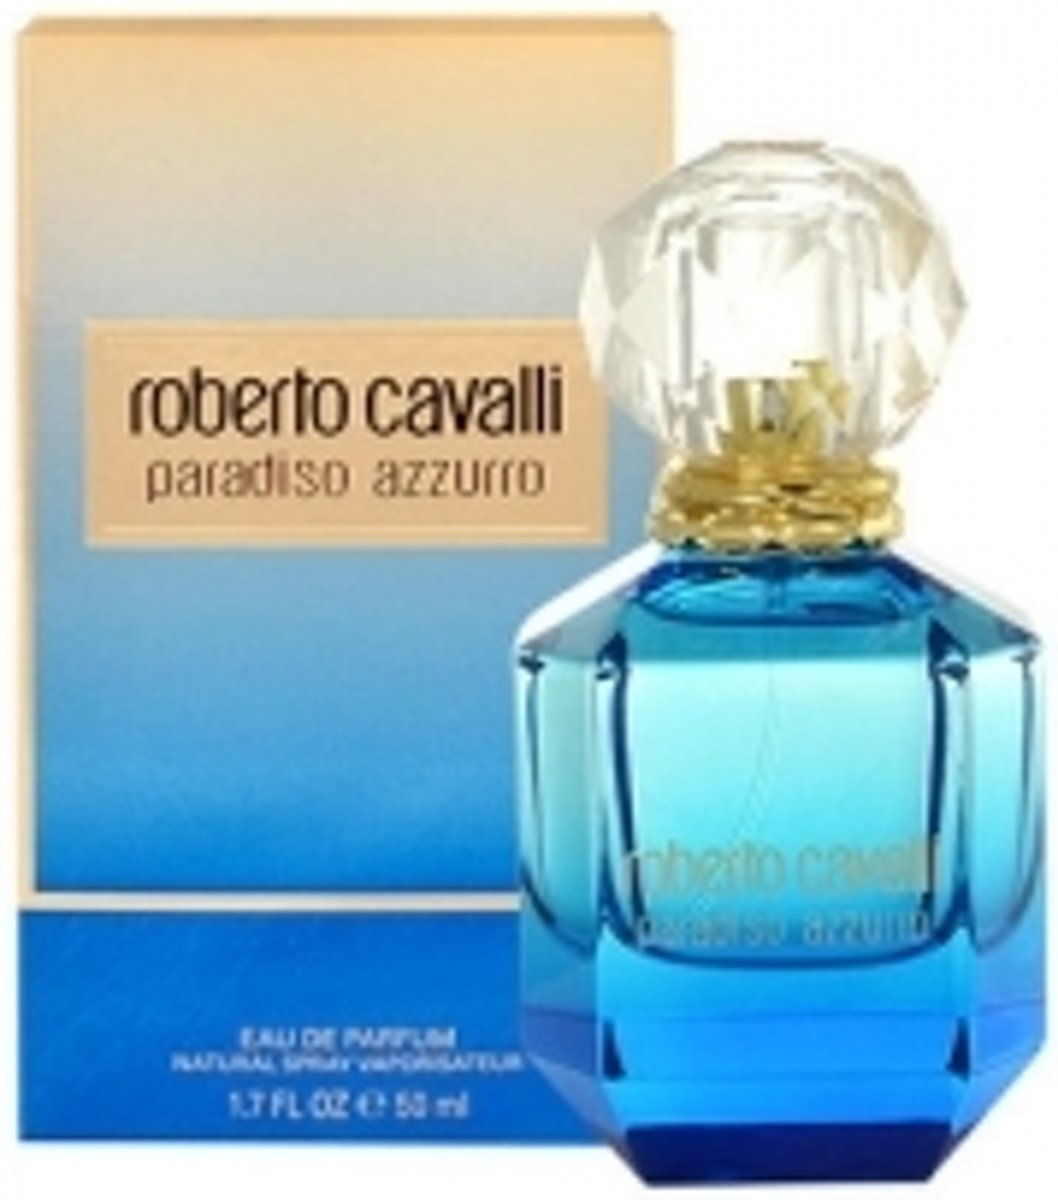 ROBERTO CAVALLI PARADISO AZZURO EDP SPRAY 75 ml